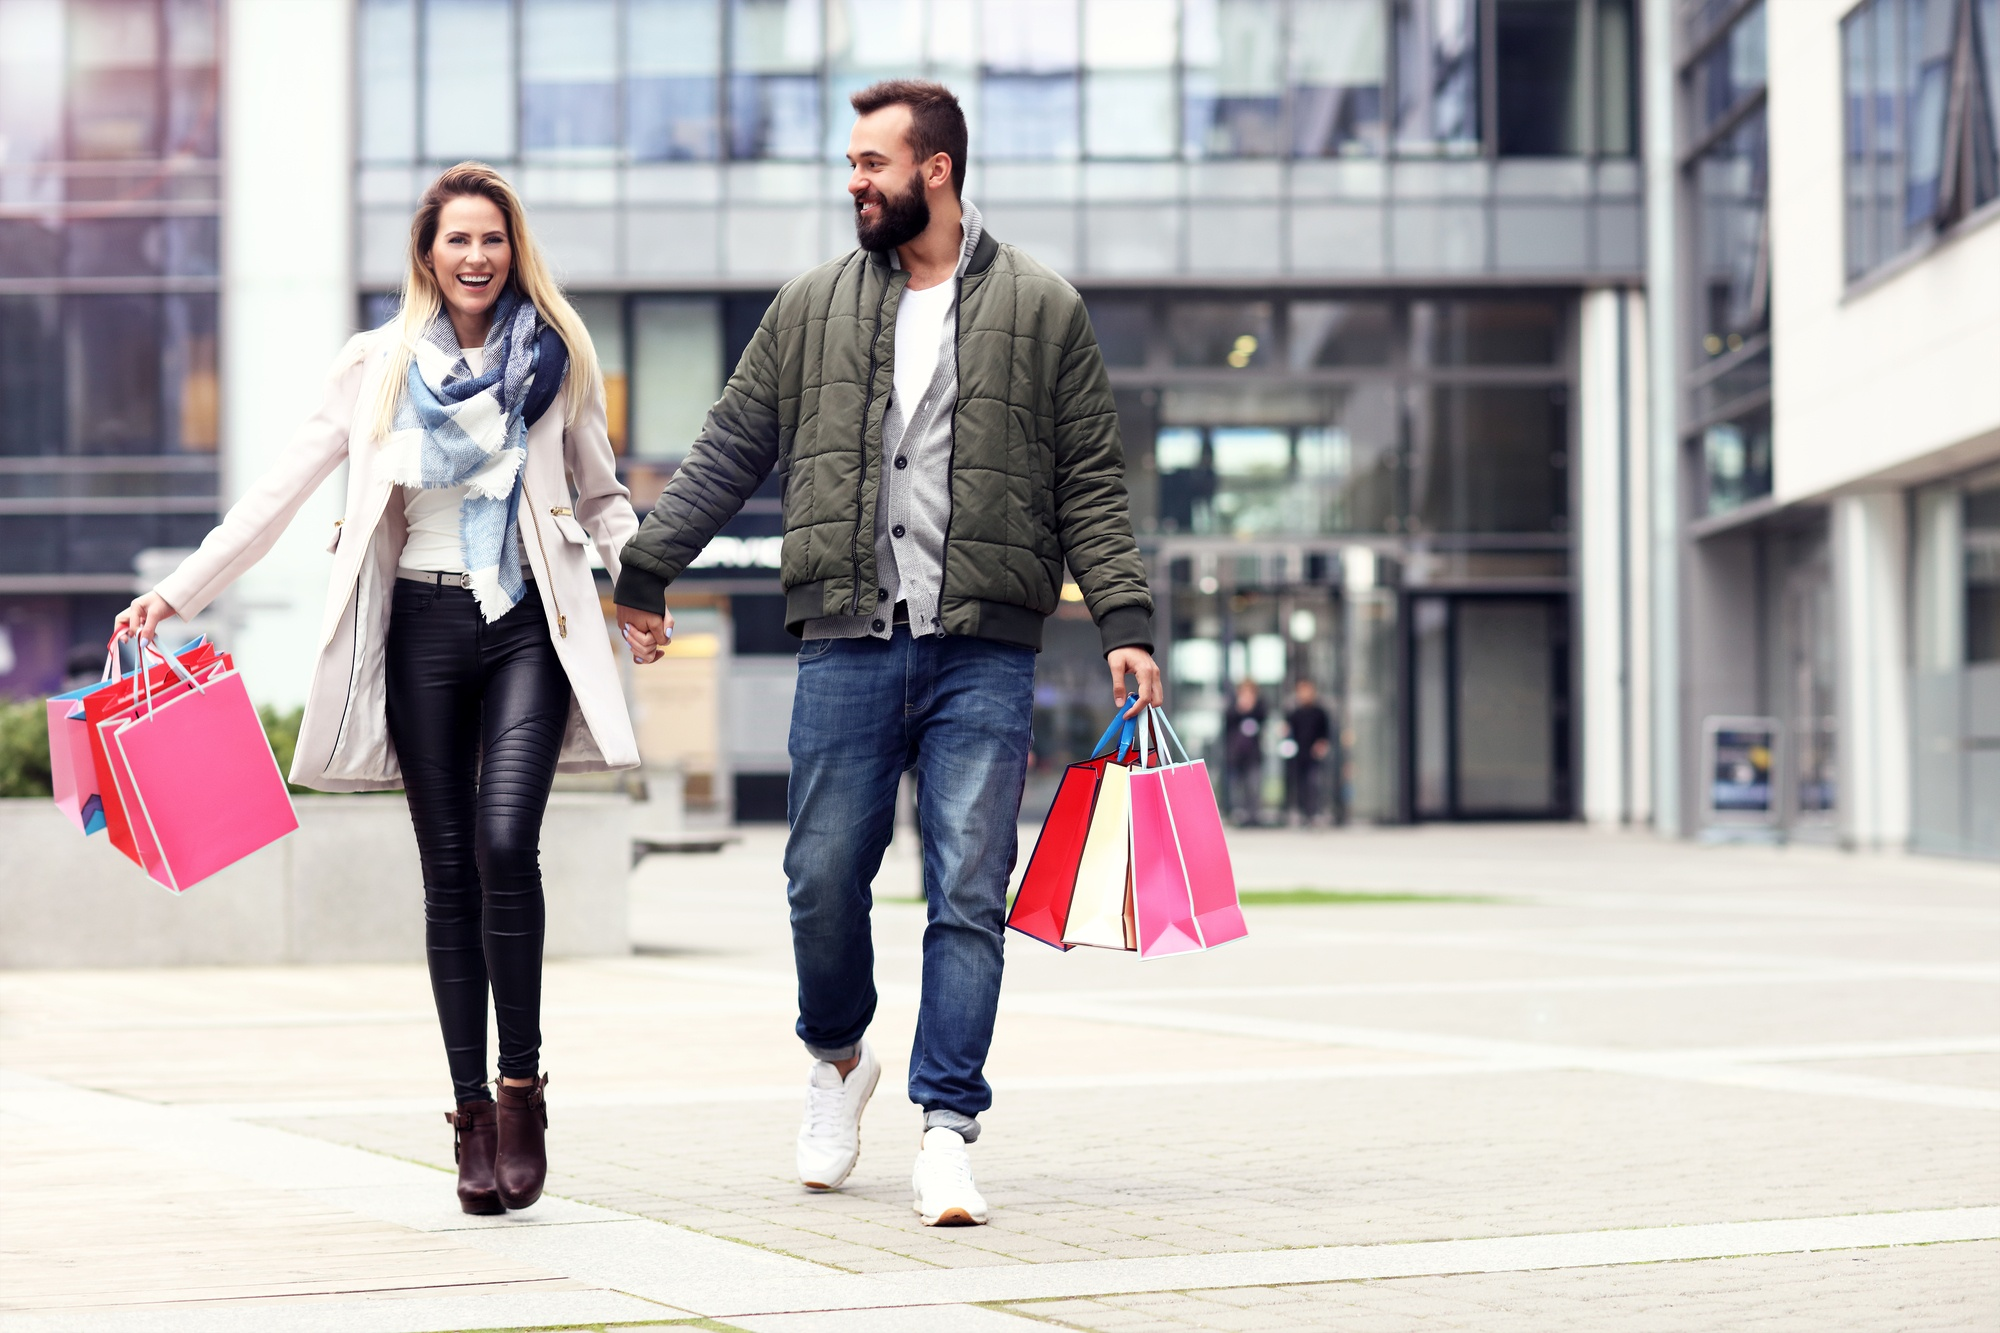 Yelp shopping social media location agency man woman with bags